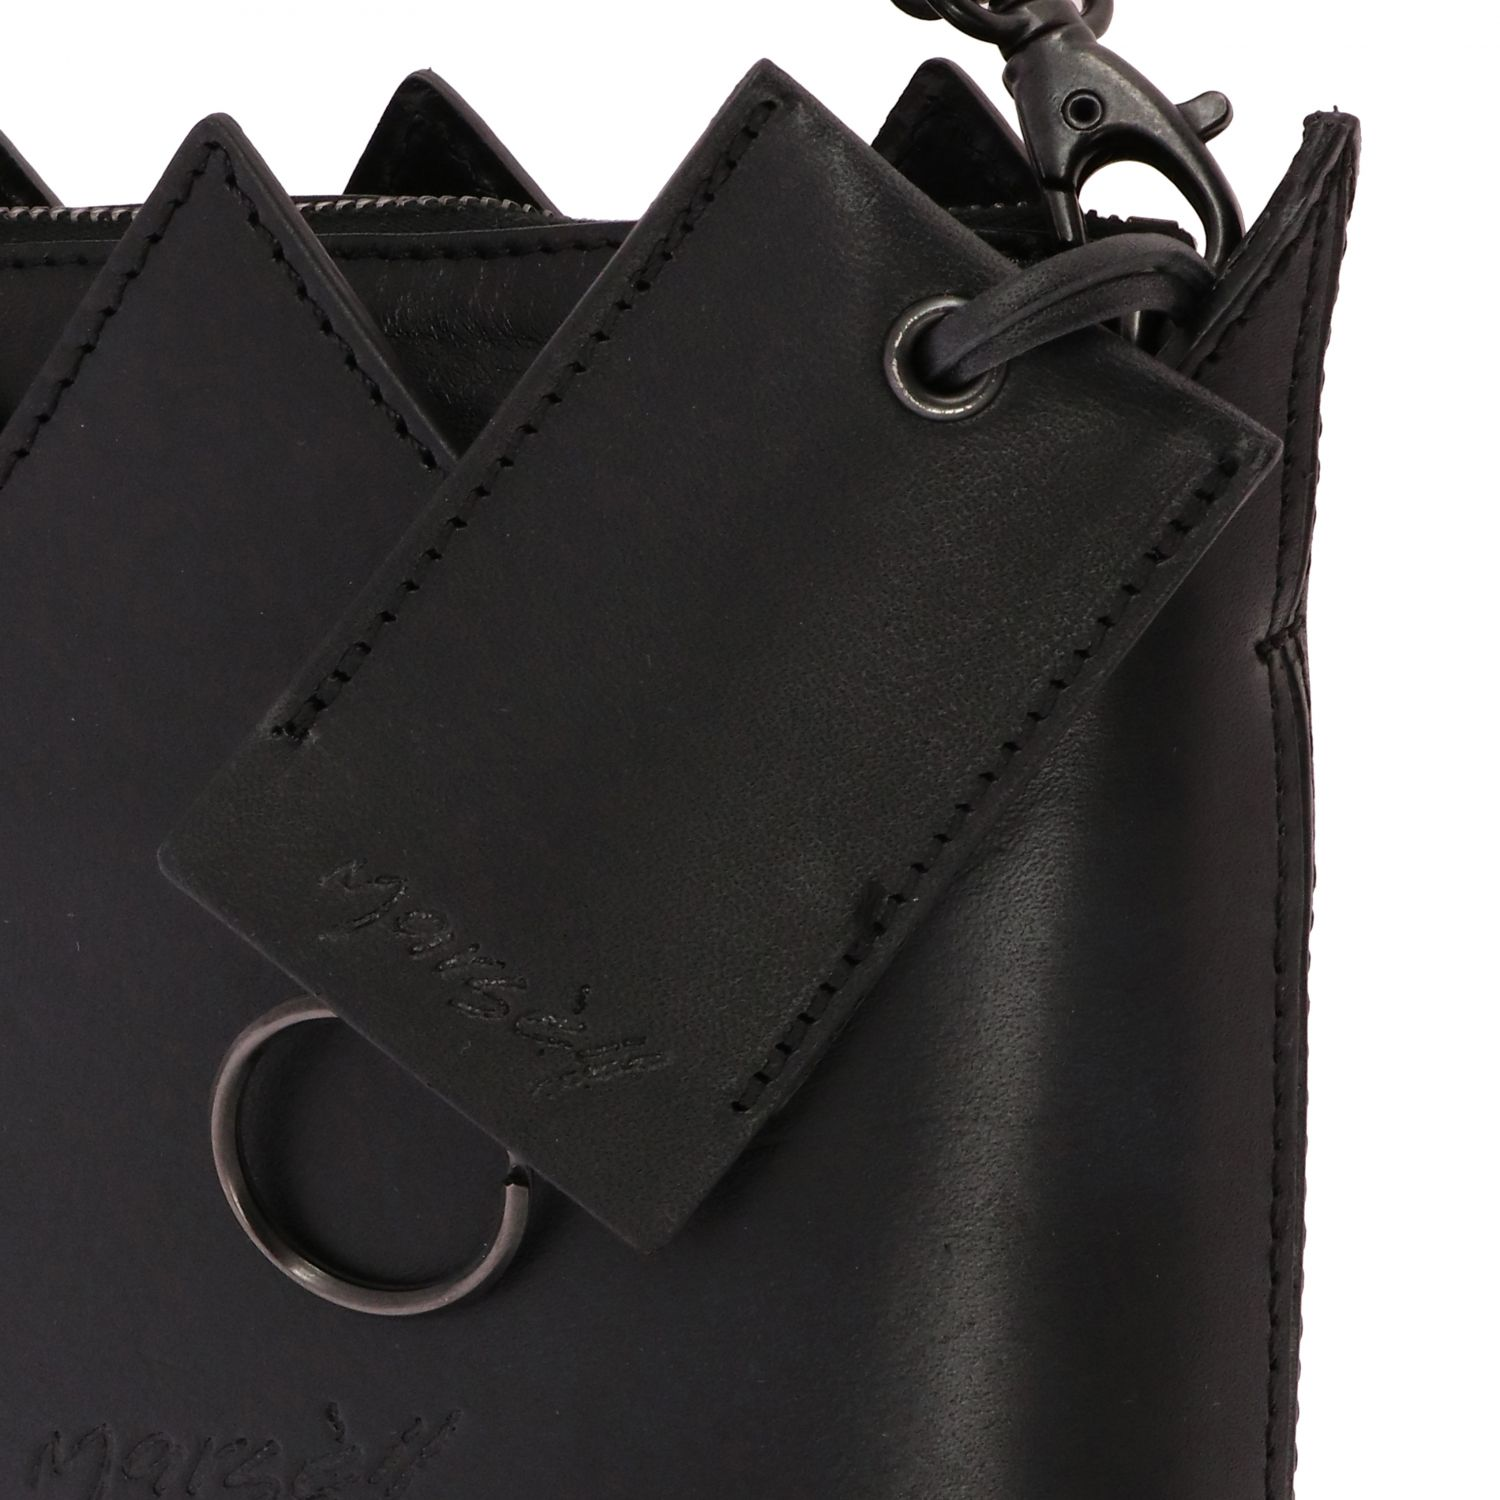 Marsell Mini Corona leather bag with shoulder strap black 4